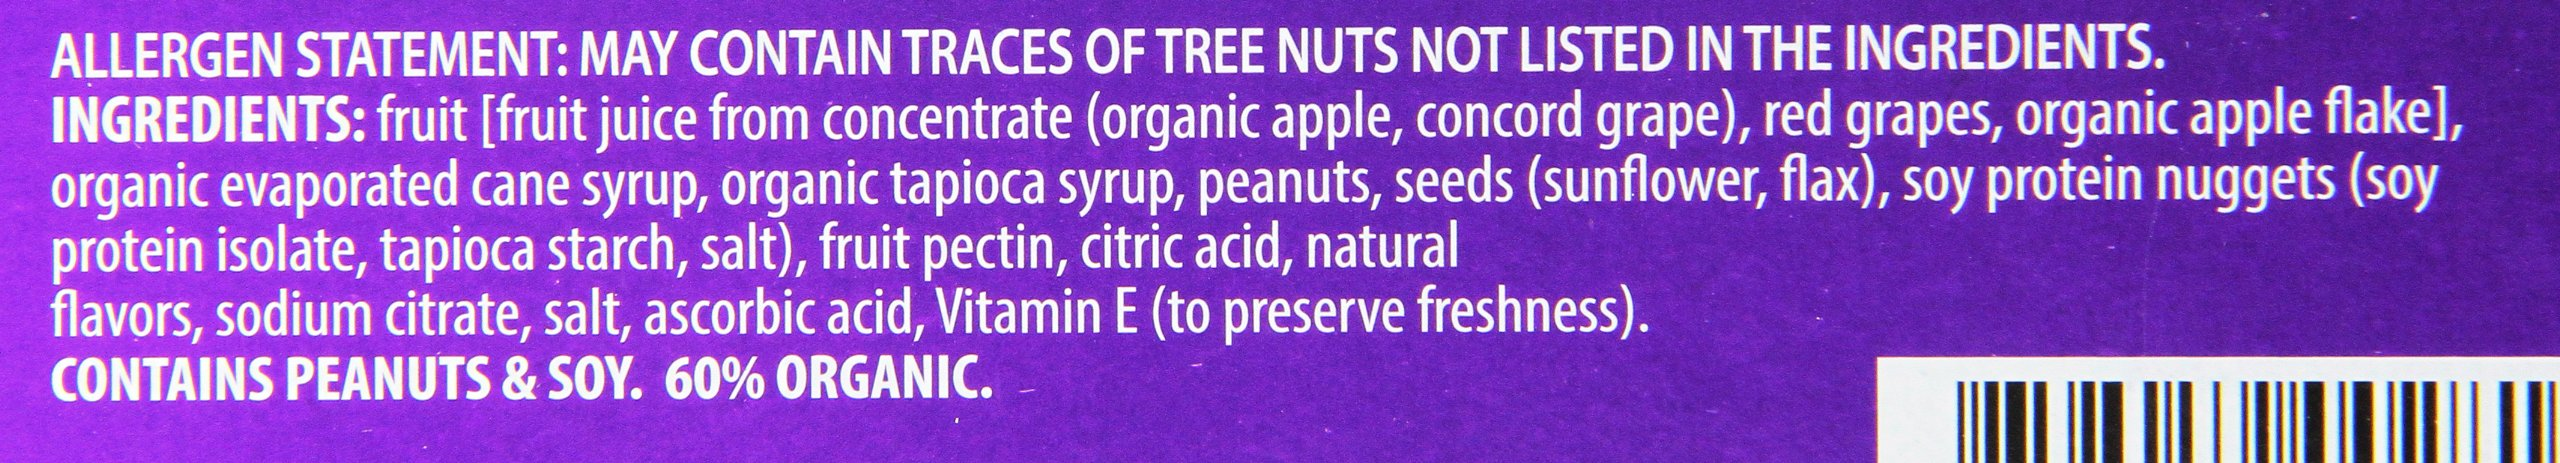 Orchard Bars Peanut Crunch Fruit and Nut Bar, Concord Grape, 1.4 Ounce (Pack of 12) by Orchard Bars (Image #3)